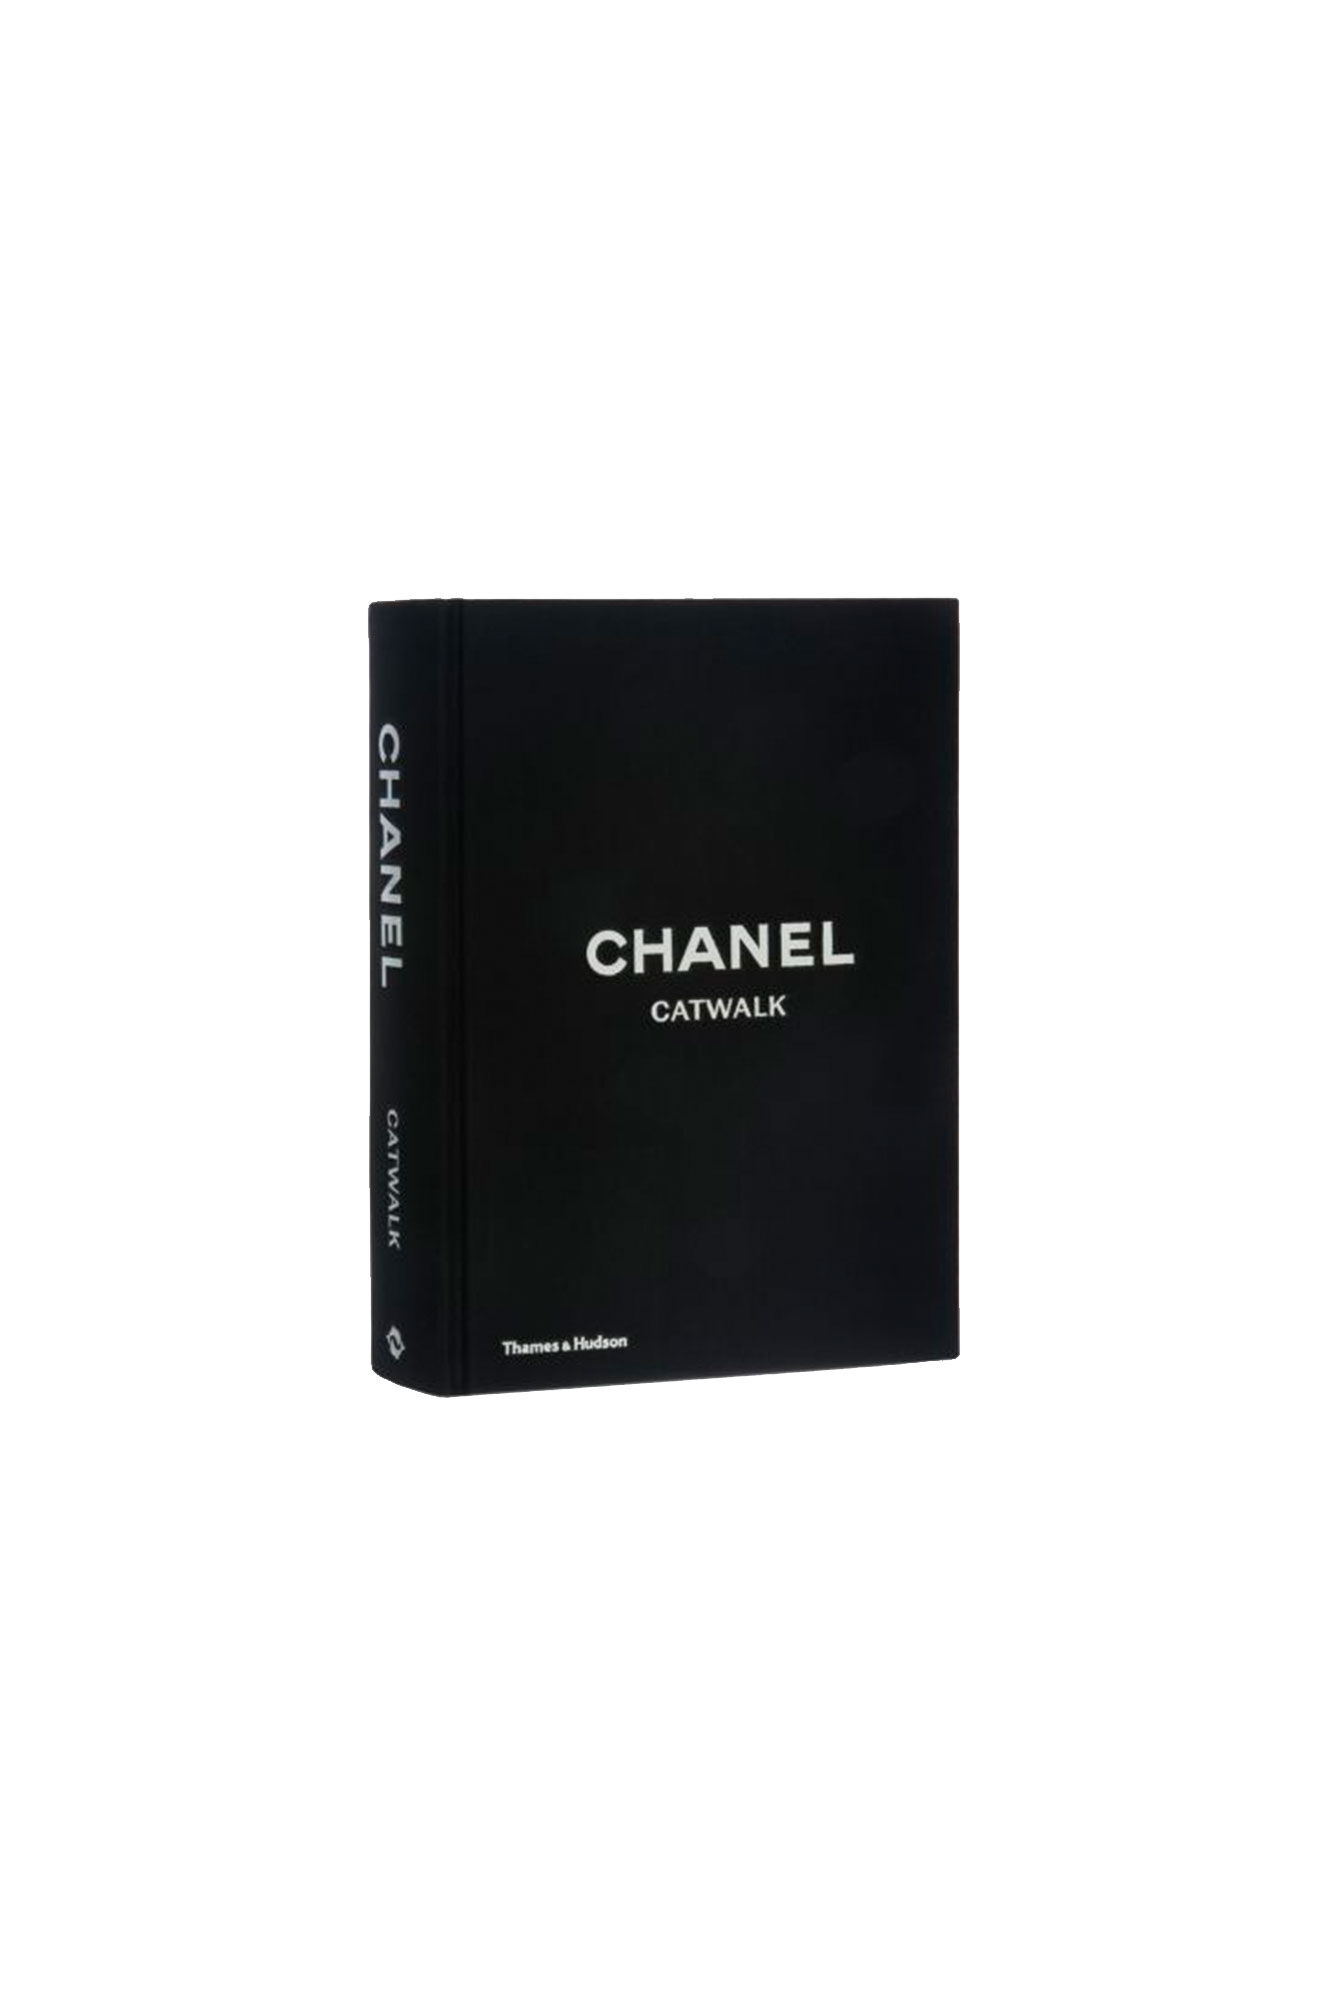 Chanel catwalk TH1010, MULTIPLE